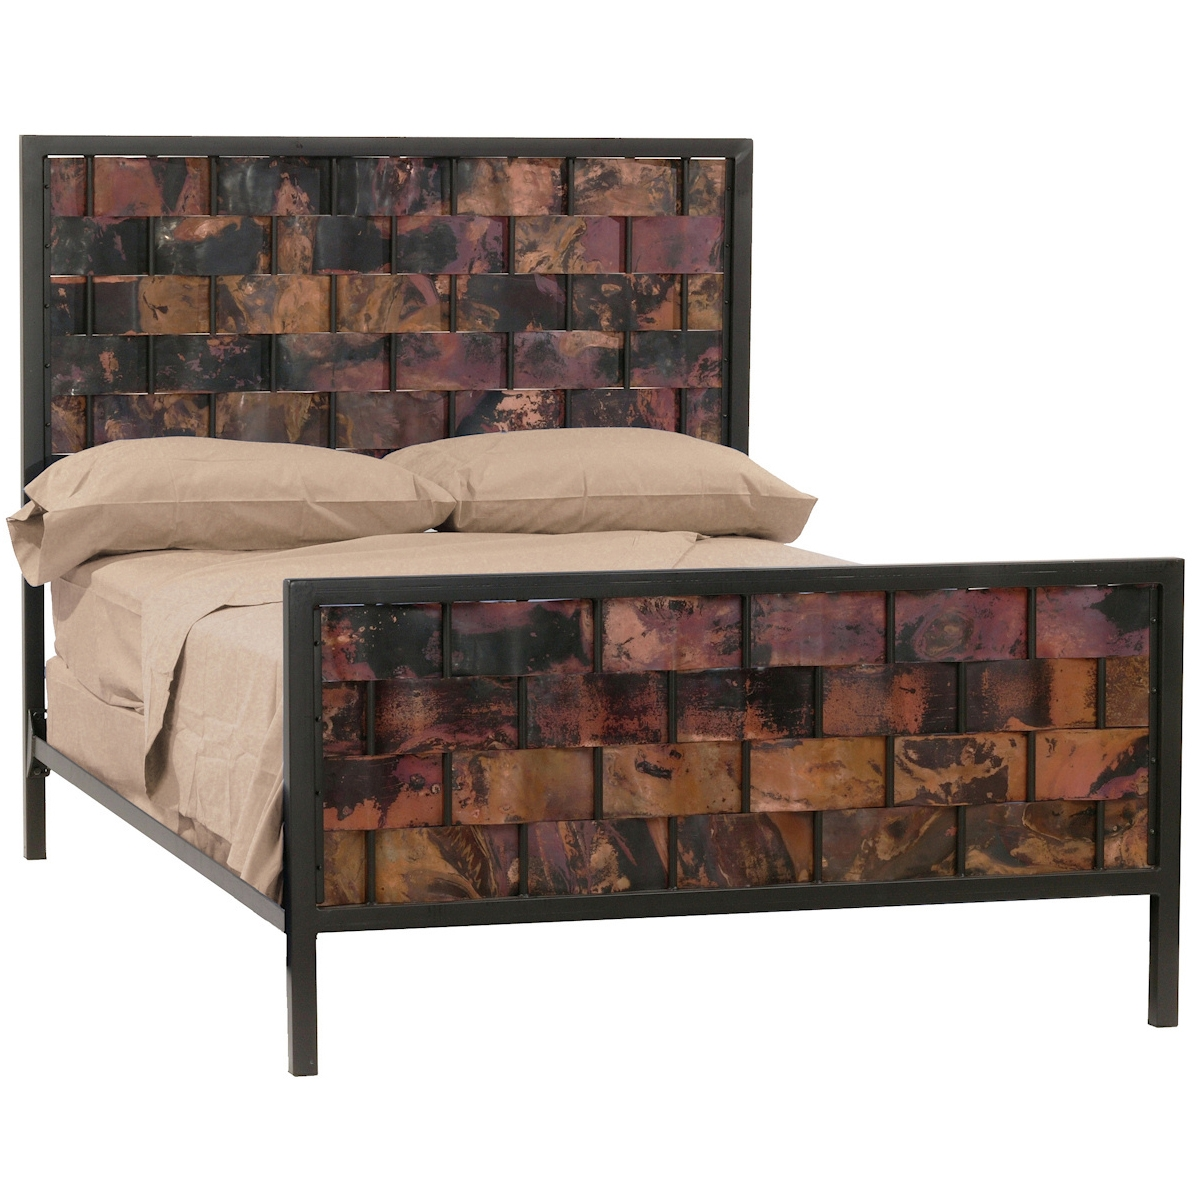 Rushton Wrought Iron Bed with Woven Copper Headboard and Foot Board